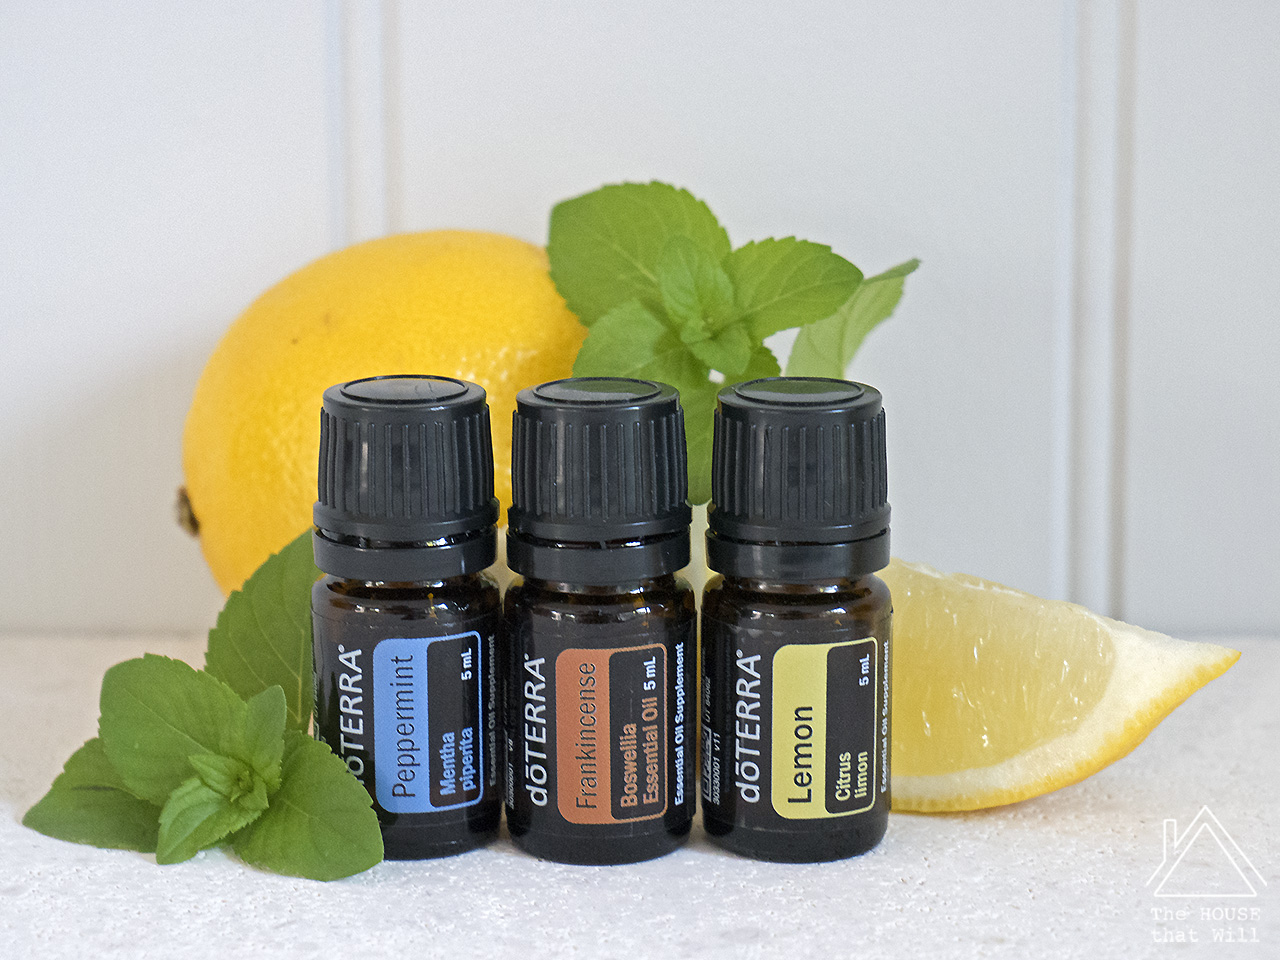 18 essential oils 1070584